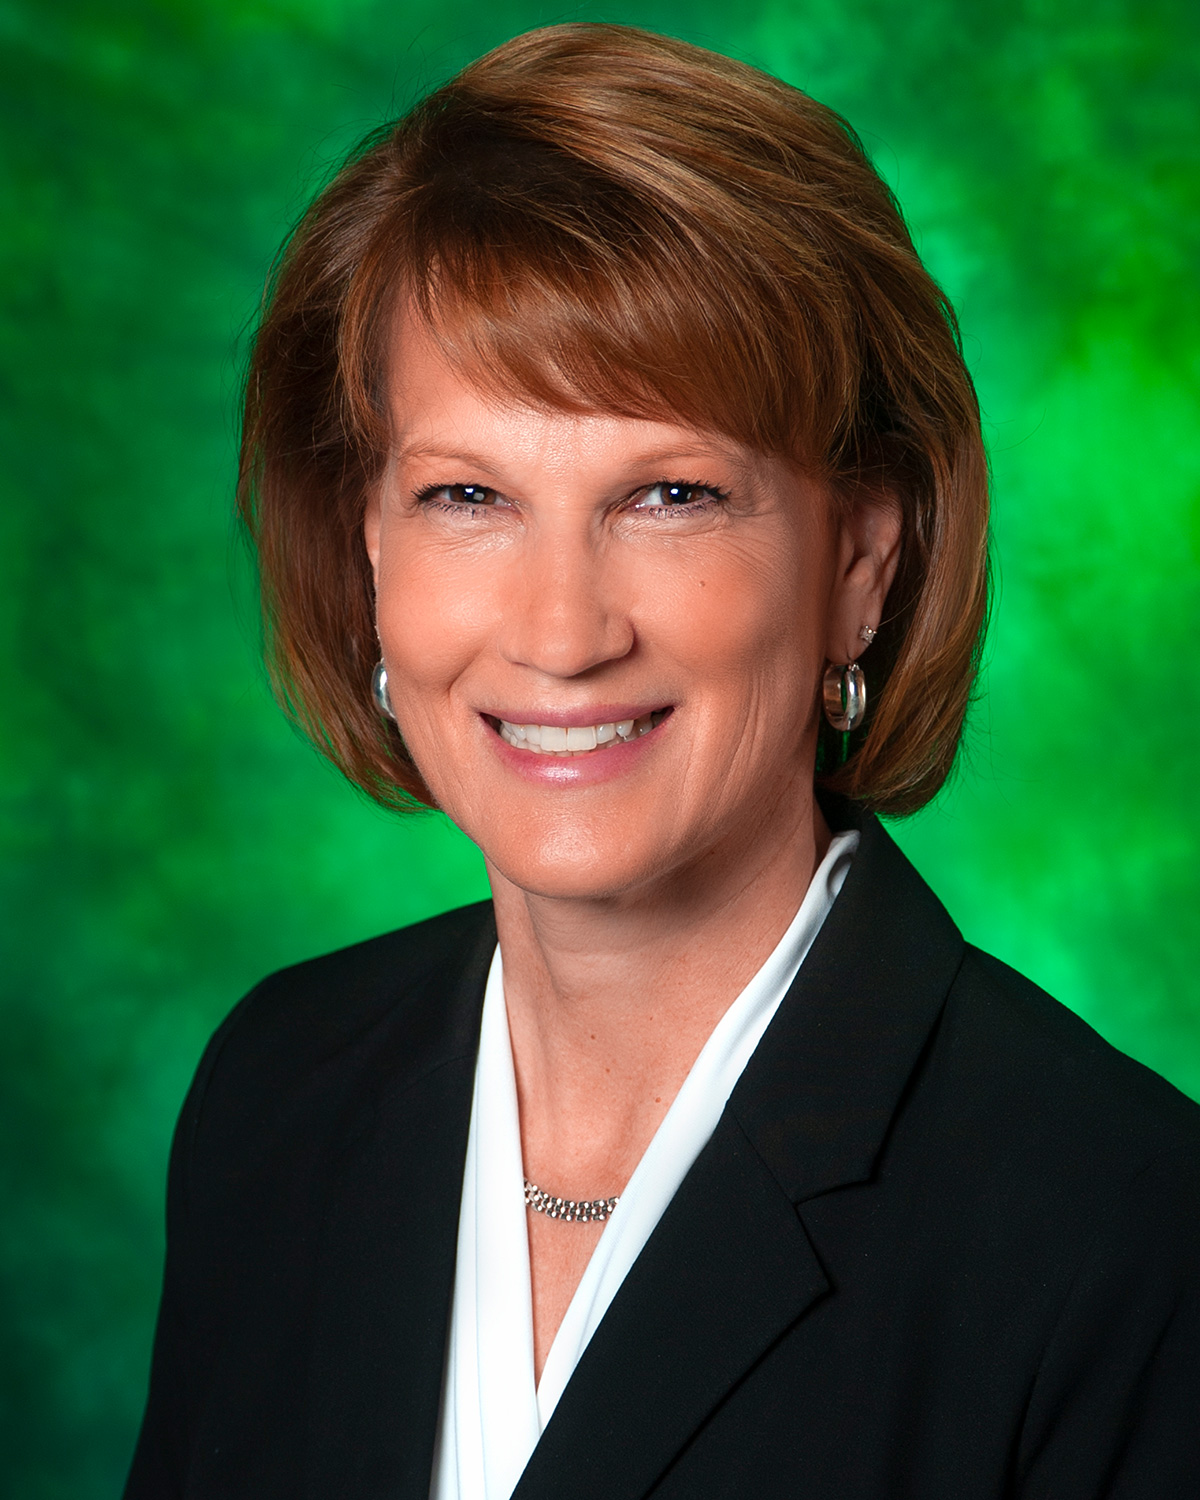 UNT Vice Provost for Curricular Innovation and Academic Partnerships, Brenda Kihl